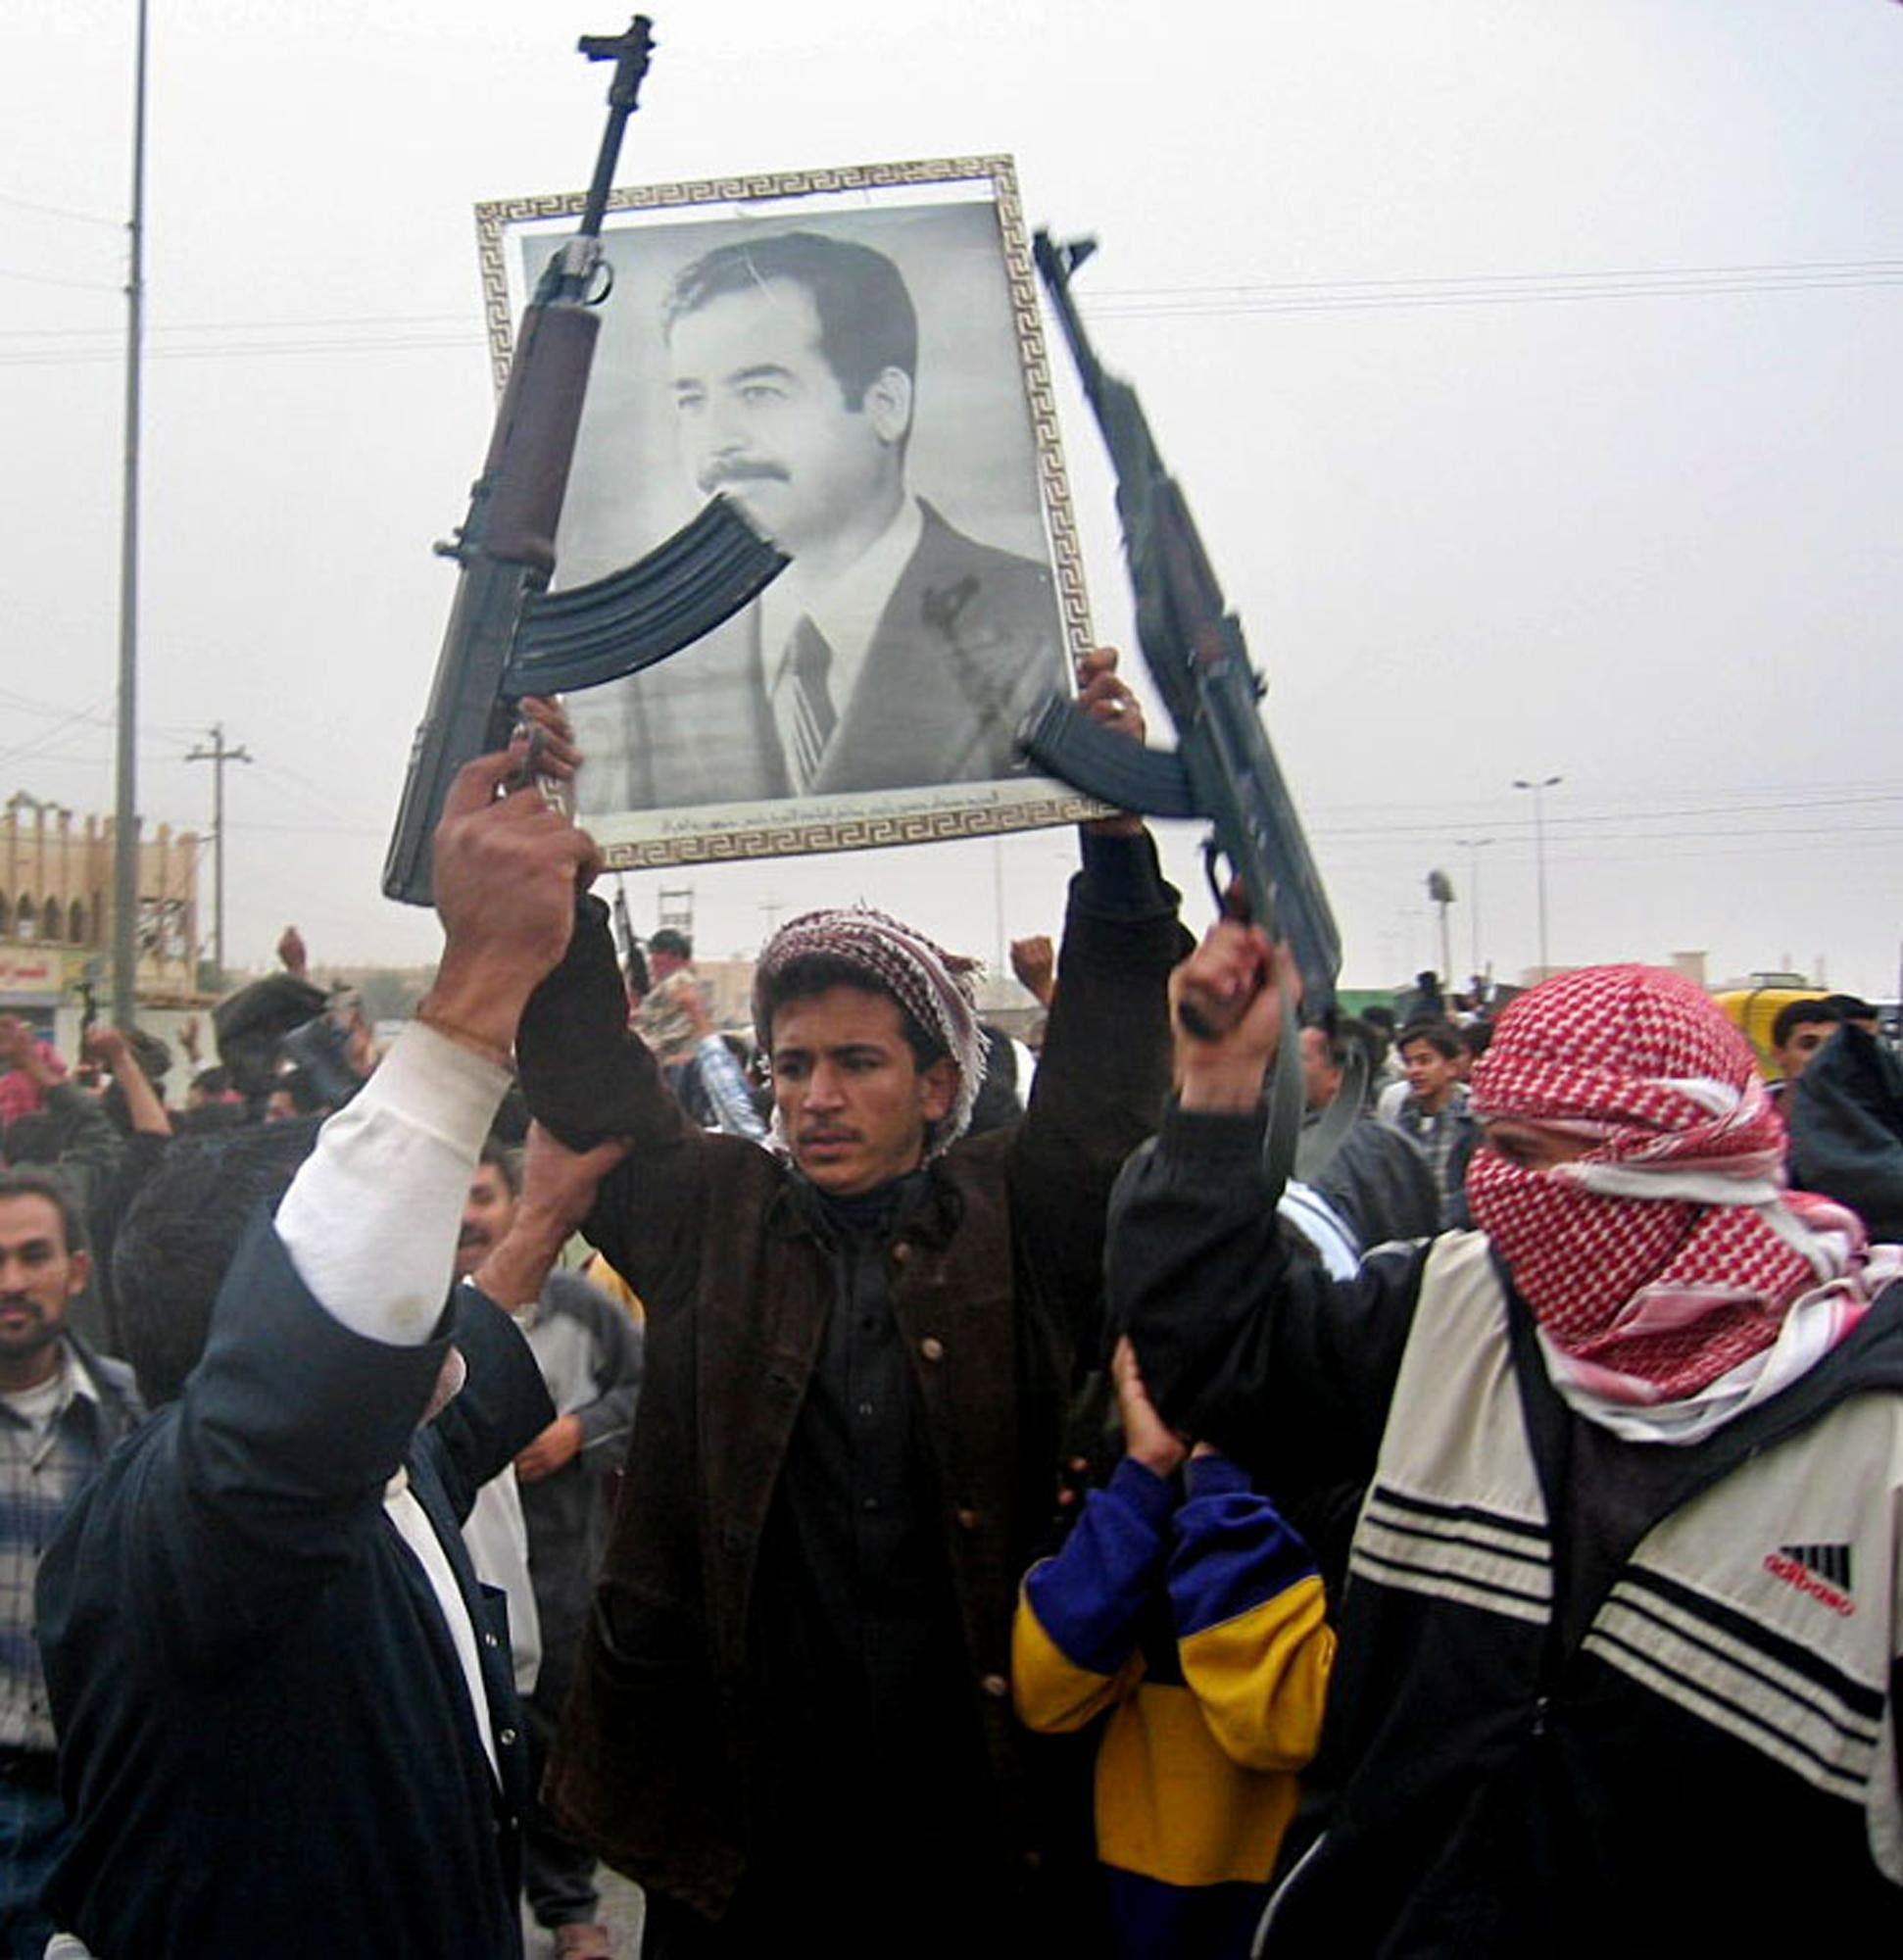 """Several hundred armed demonstrators and local residents take to the streets of the town of Fallujah, 50 kms west of Baghdad, 16 December, 2003, chanting pro-Saddam slogans and letting off celebratory gunfire into the air, pledging their allegiance to their deposed leader, and chanting, """"We will sacrifice ourselves to you Saddam, with our blood, with our soul."""" (AFP)"""